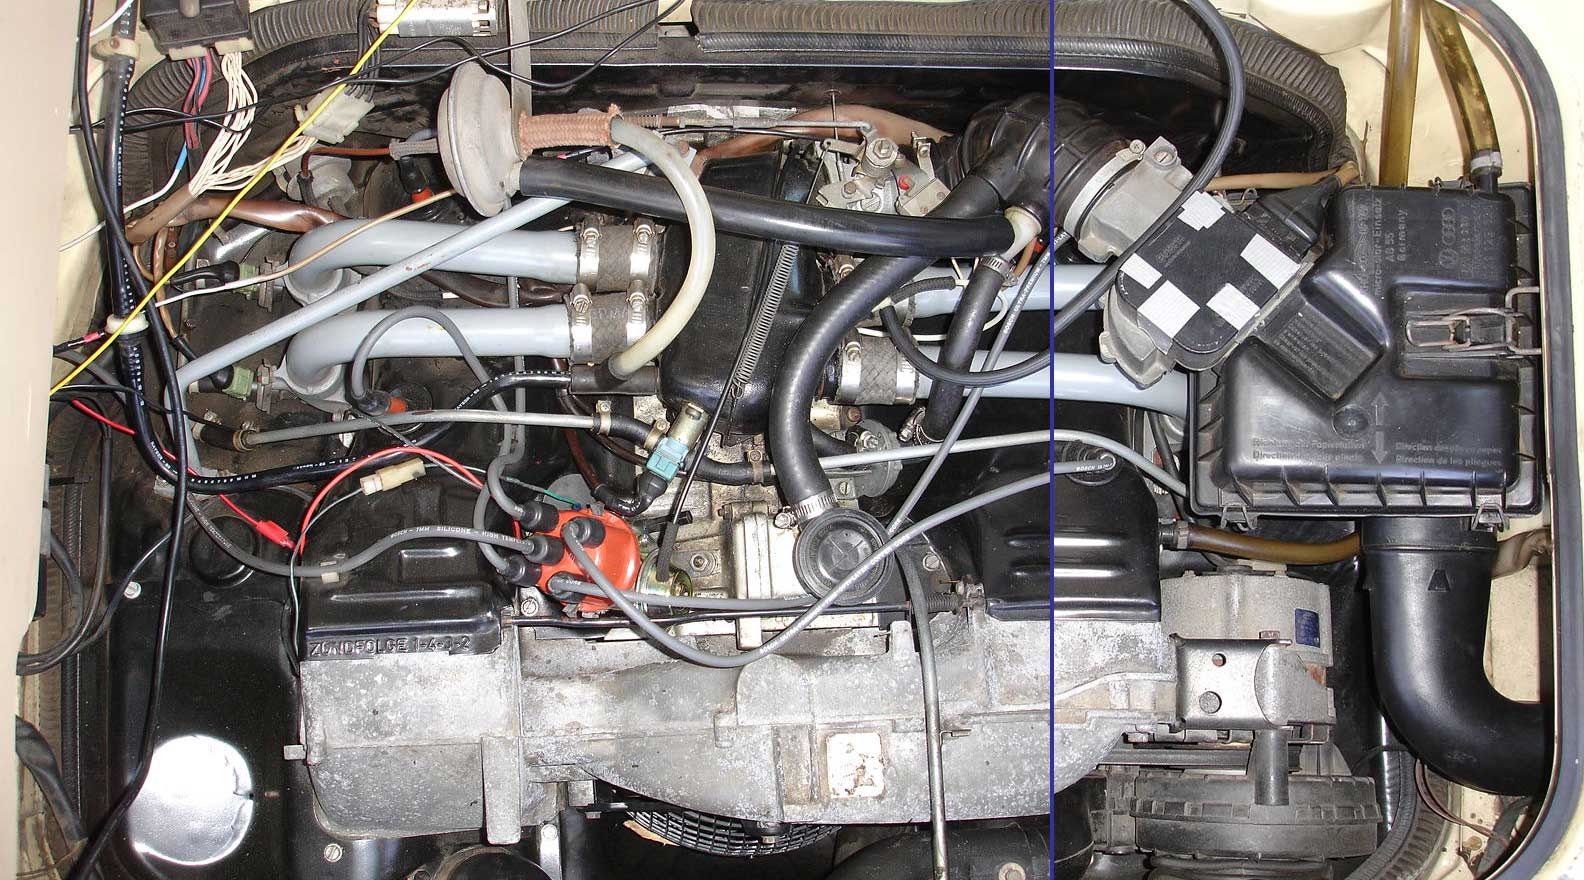 Vanagon Engine Diagram Archive Of Automotive Wiring Ej22 1982 Vw Electrical Diagrams Rh Wiringforall Today